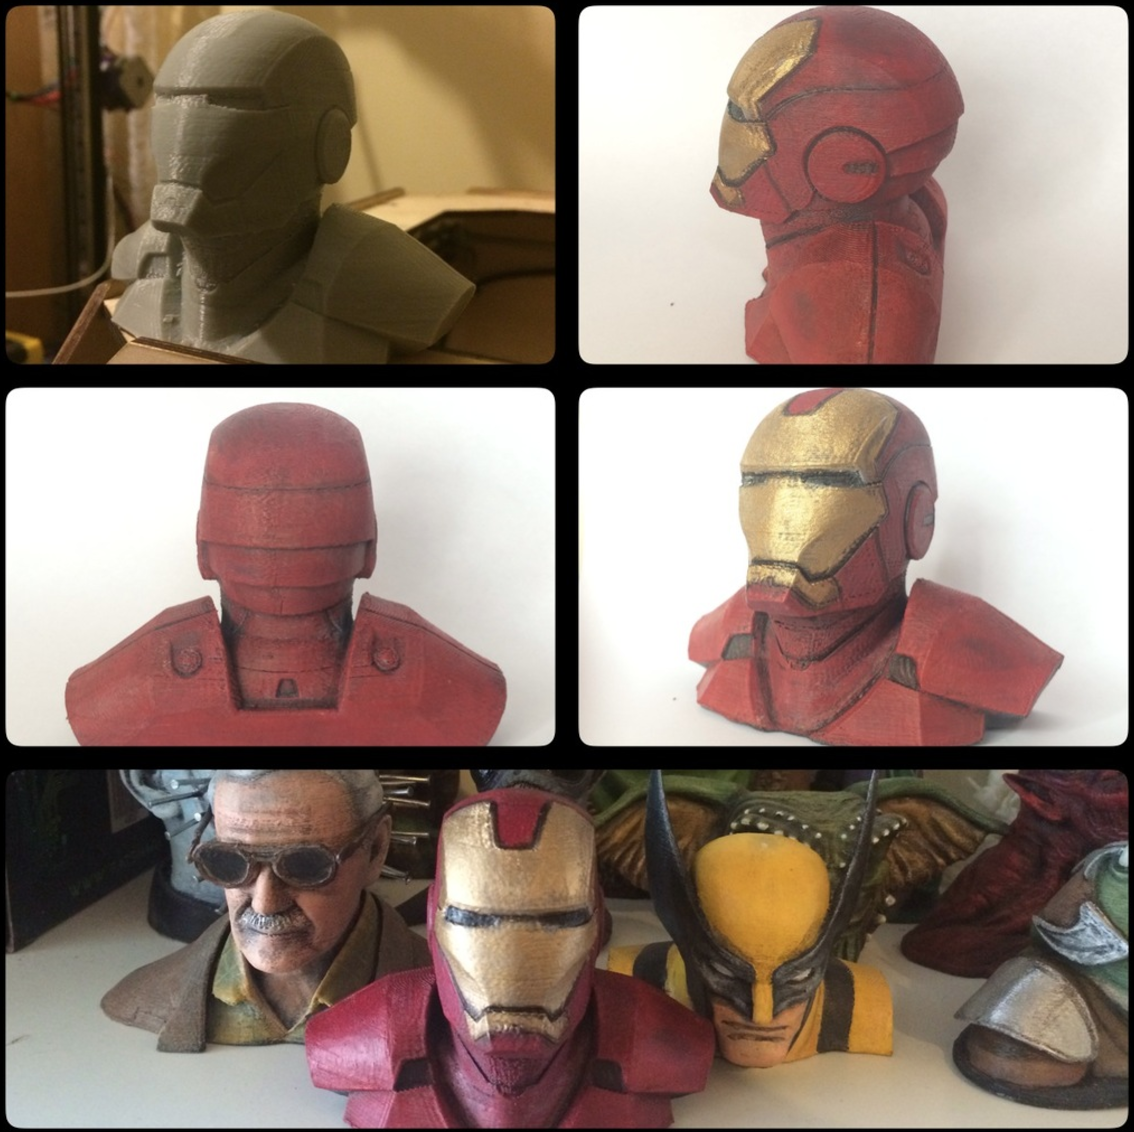 Capture d'écran 2016-12-13 à 10.26.45.png Download free STL file Iron Man Bust (Repaired, flattened) • 3D printing model, Geoffro